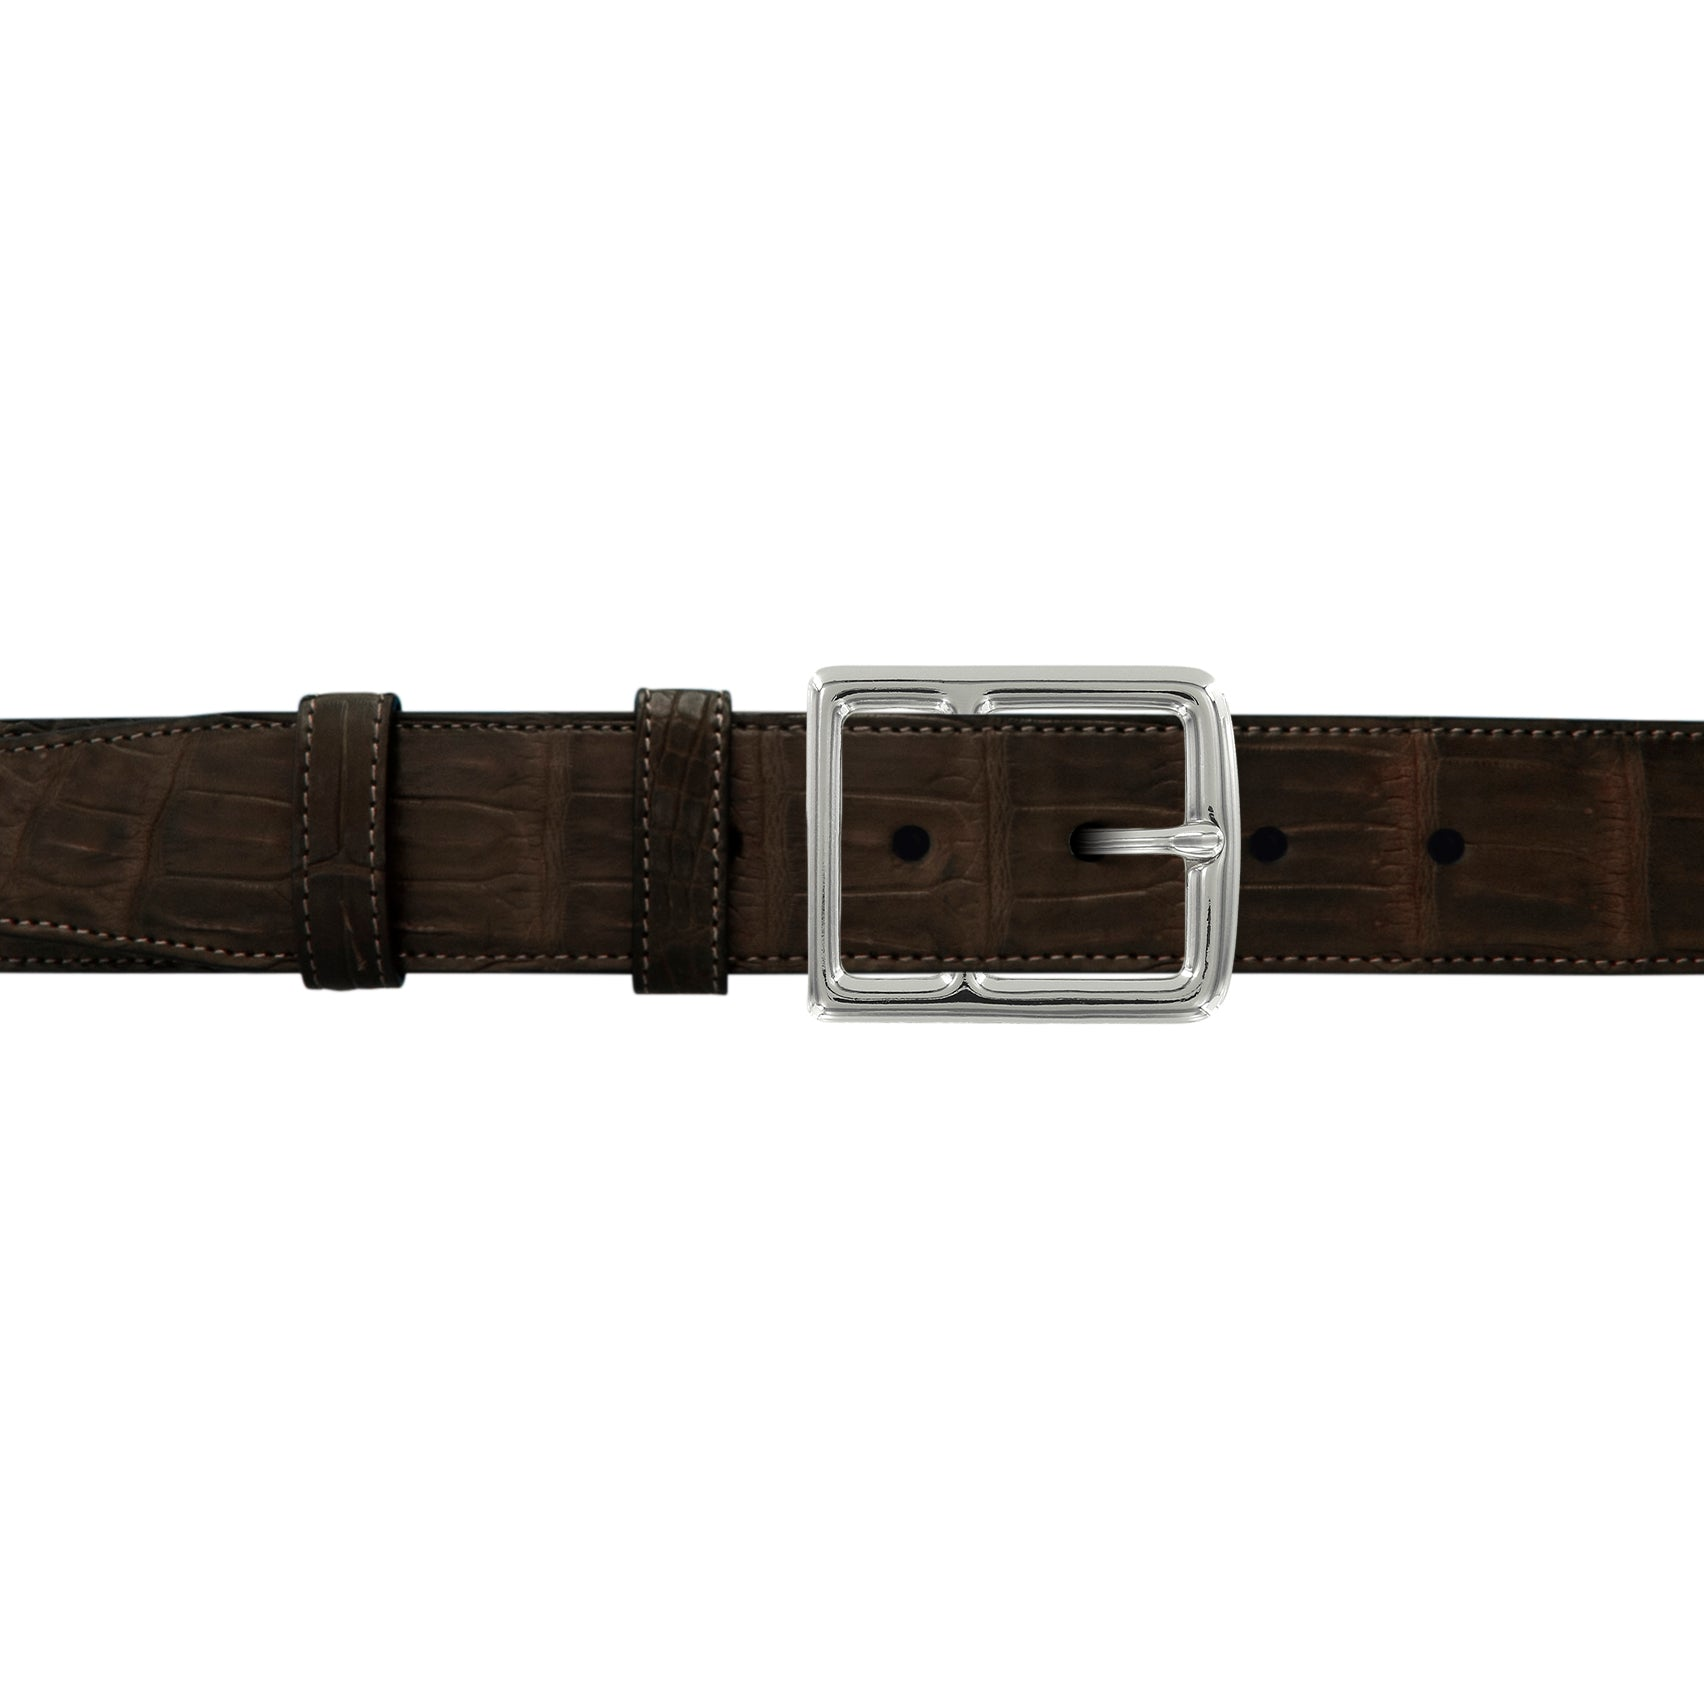 "1 1/2"" Espresso Classic Belt with Crawford Casual Buckle in Polished Nickel"